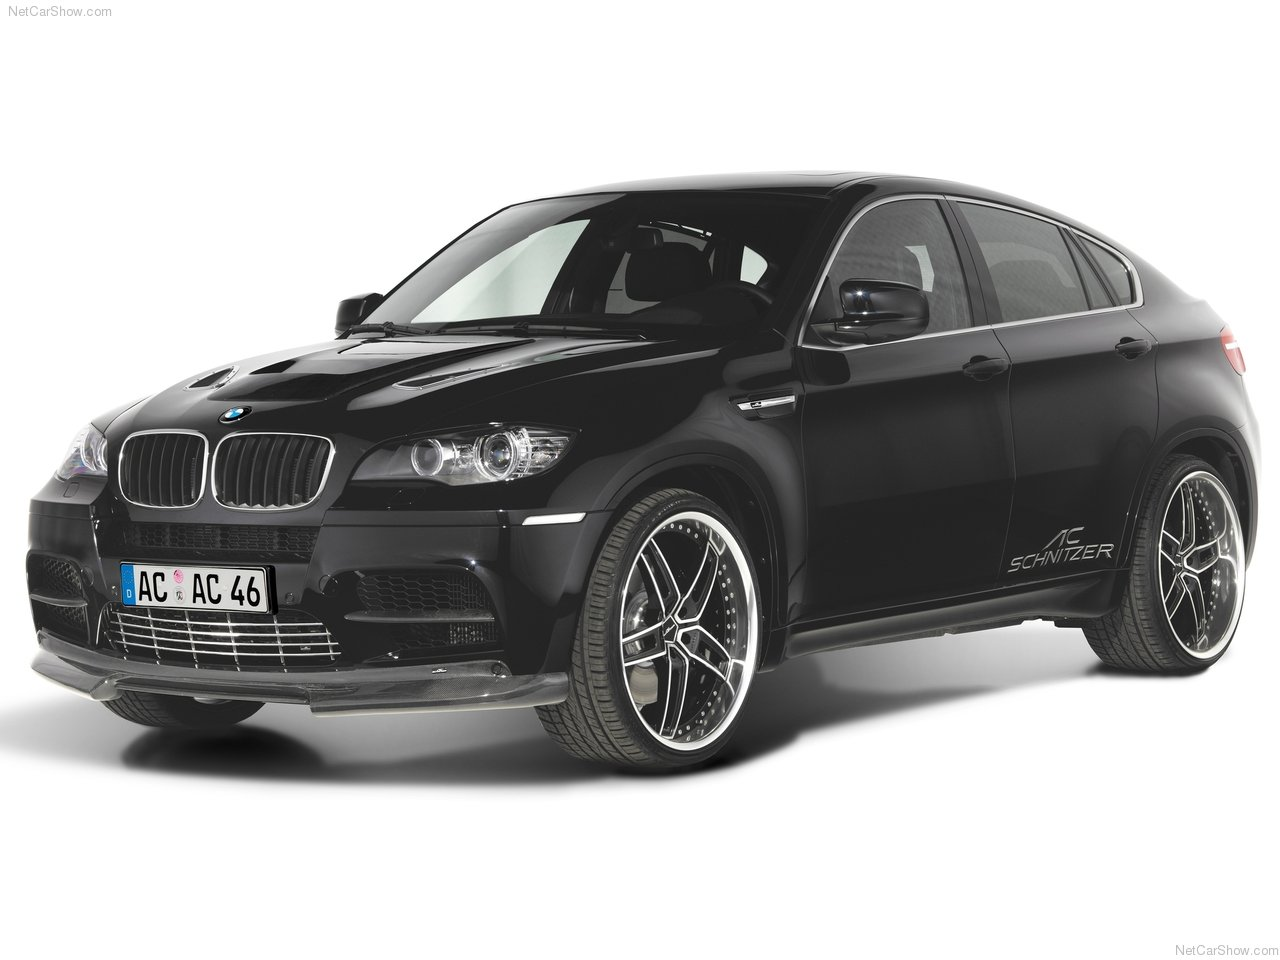 https://4.bp.blogspot.com/_eNKt9scw9RE/S_T5VxLuTUI/AAAAAAAAABo/-iOH-scIShY/s1600/AC_Schnitzer-BMW_X6_M_2010-new-car.jpg